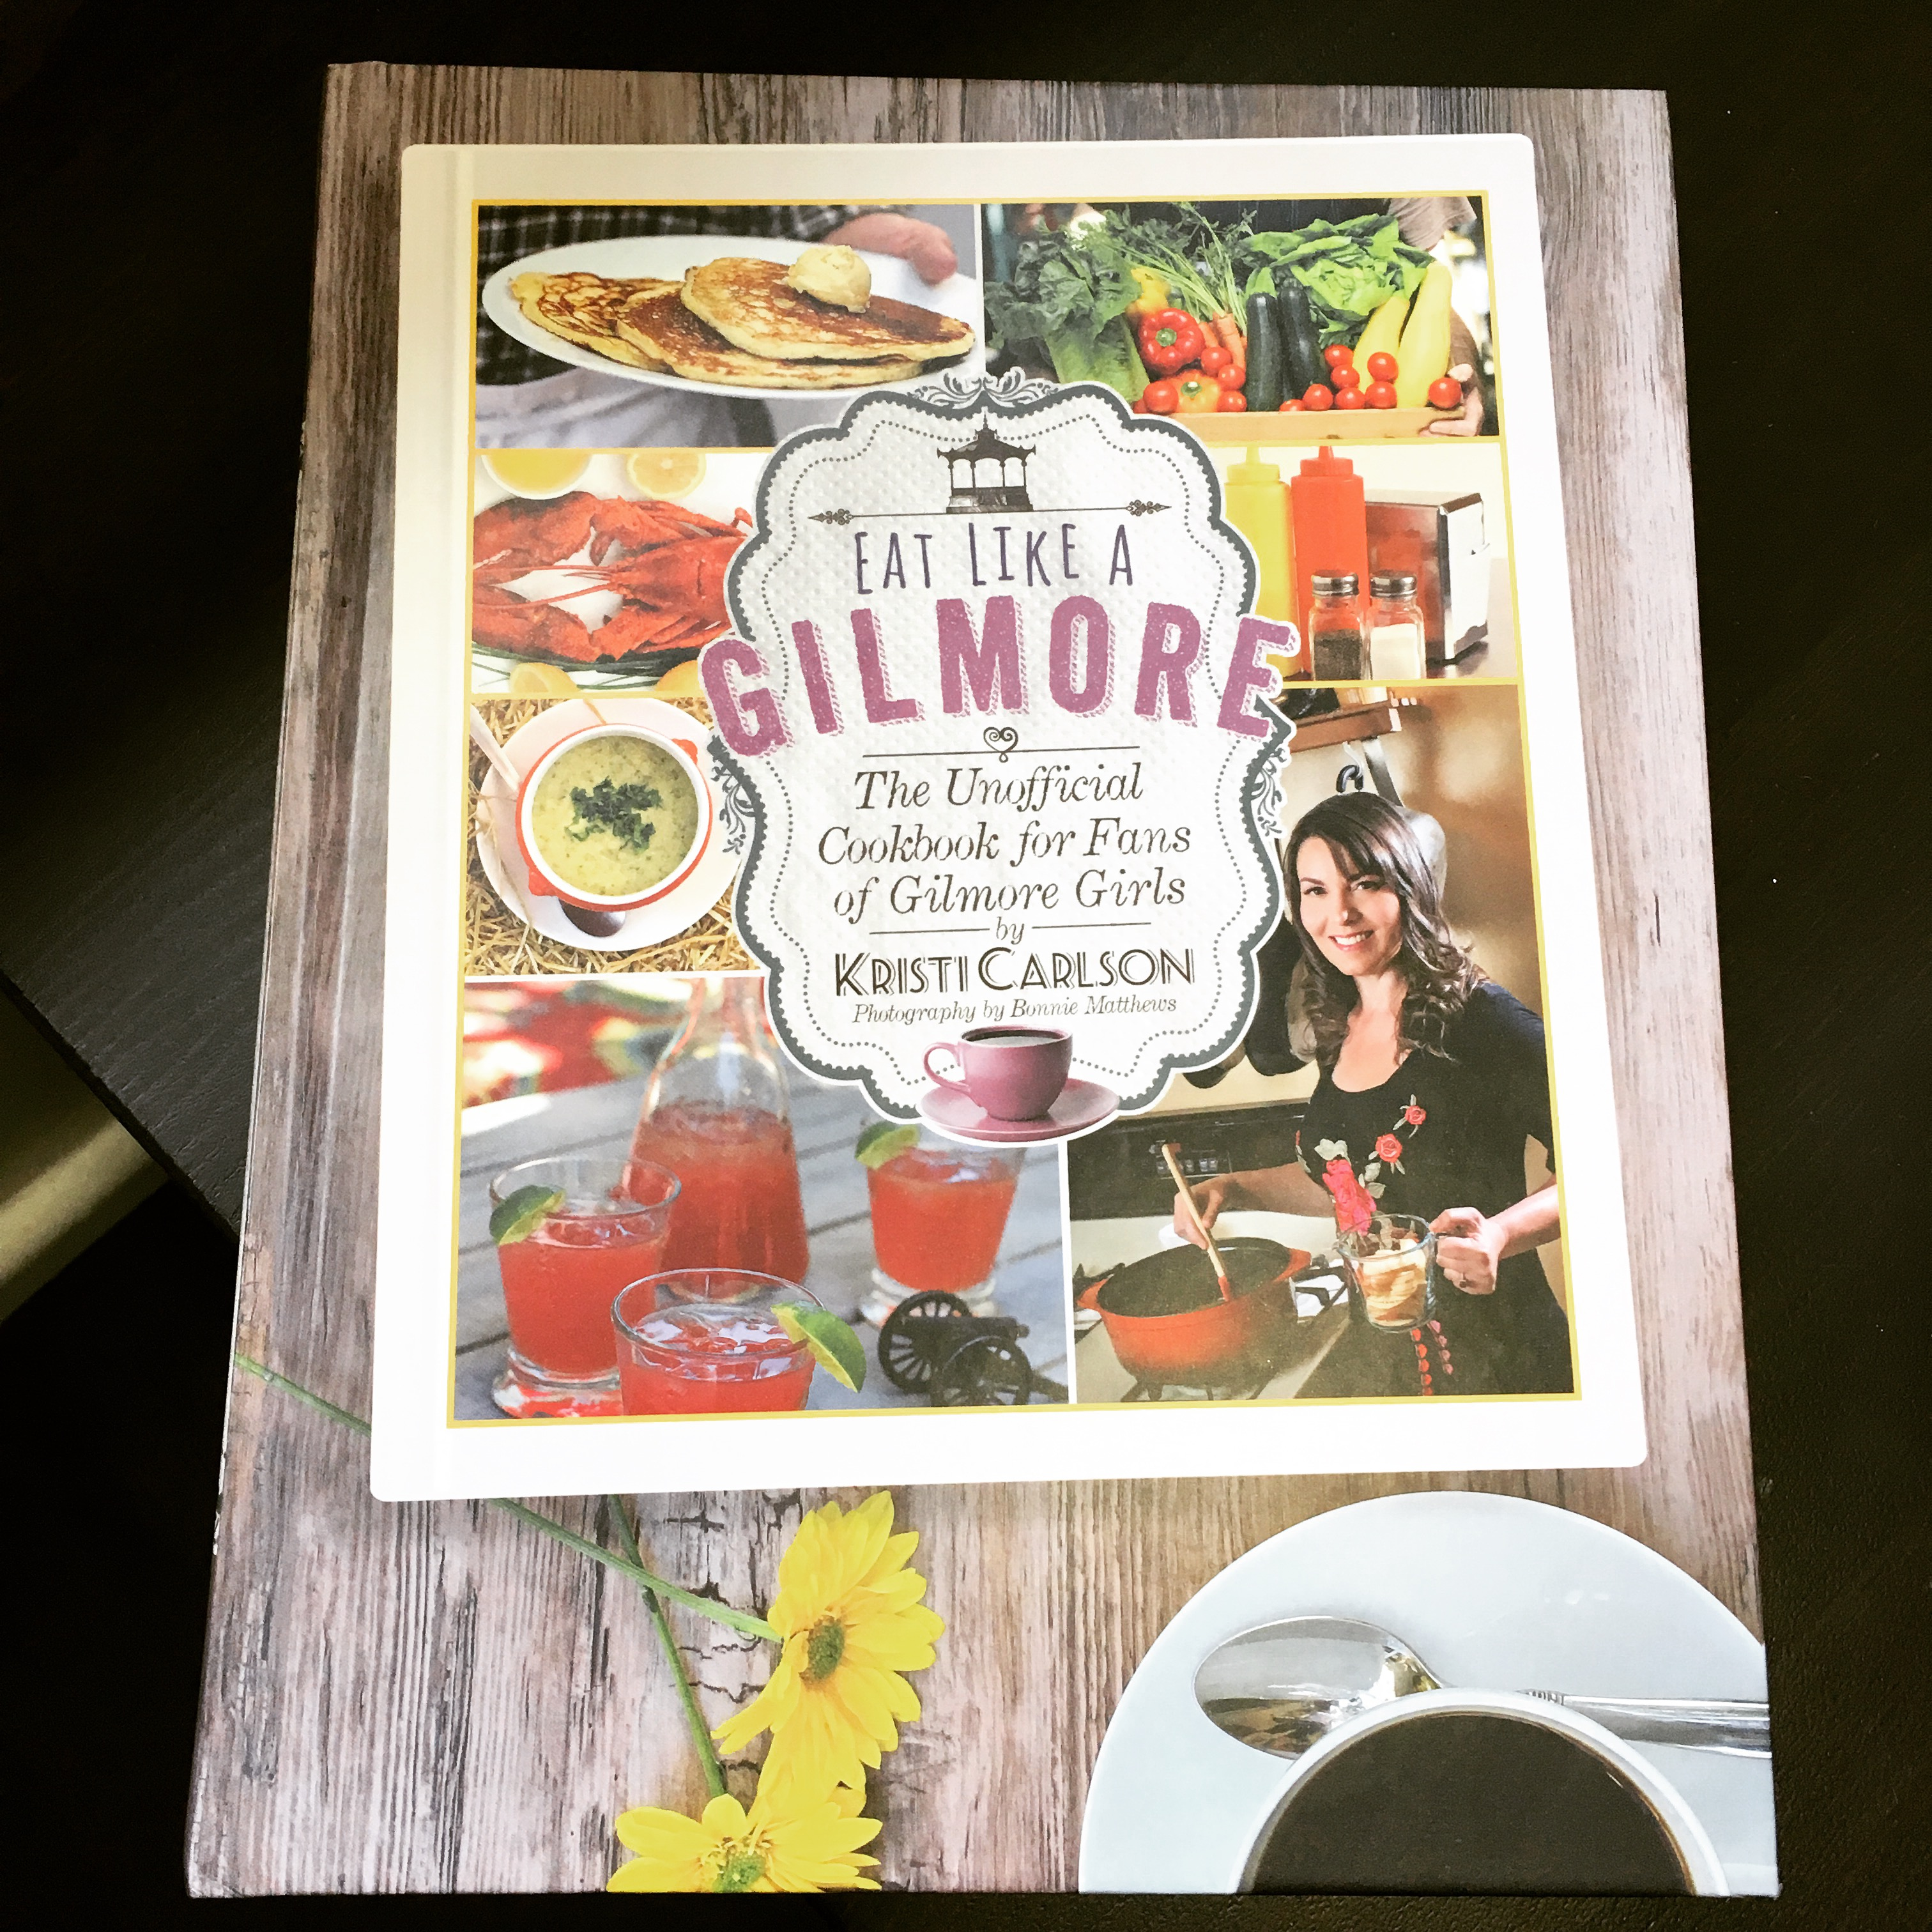 Eat Like a Gilmore by Kristi Carlson